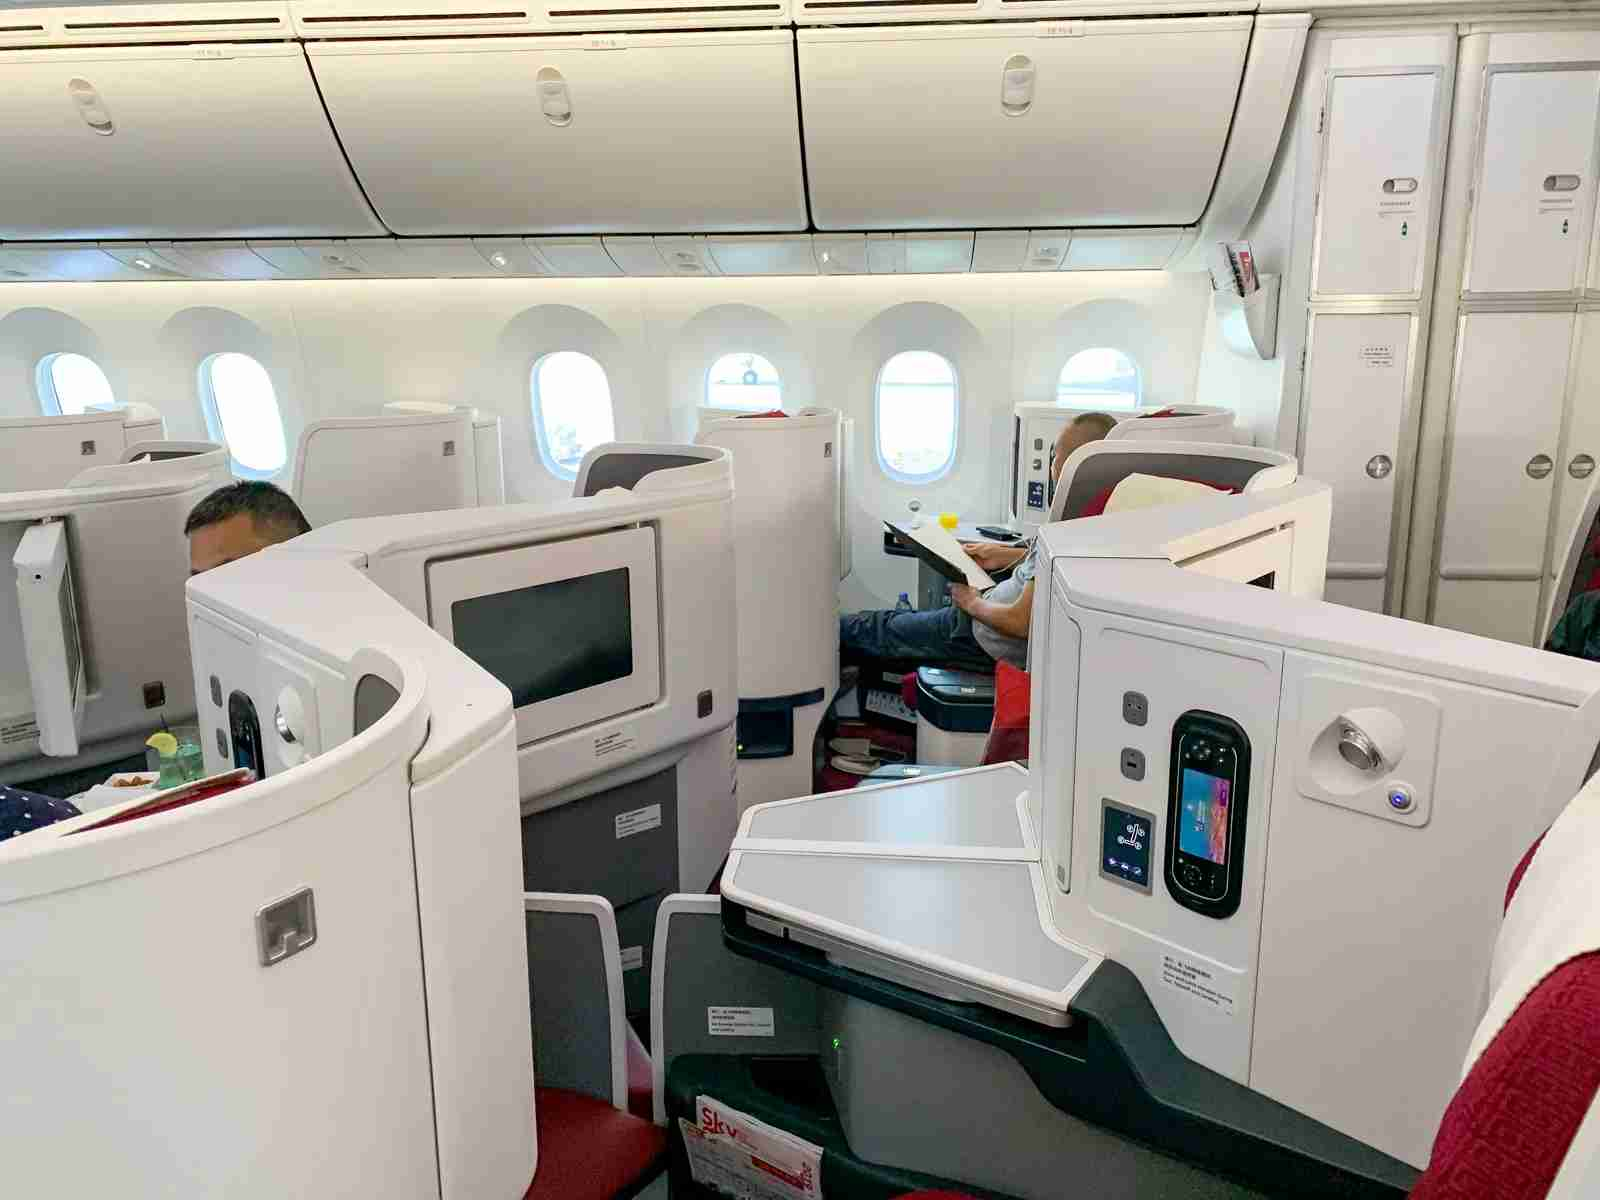 Hainan business class (Photo by Javier Rodriguez / The Points Guy)